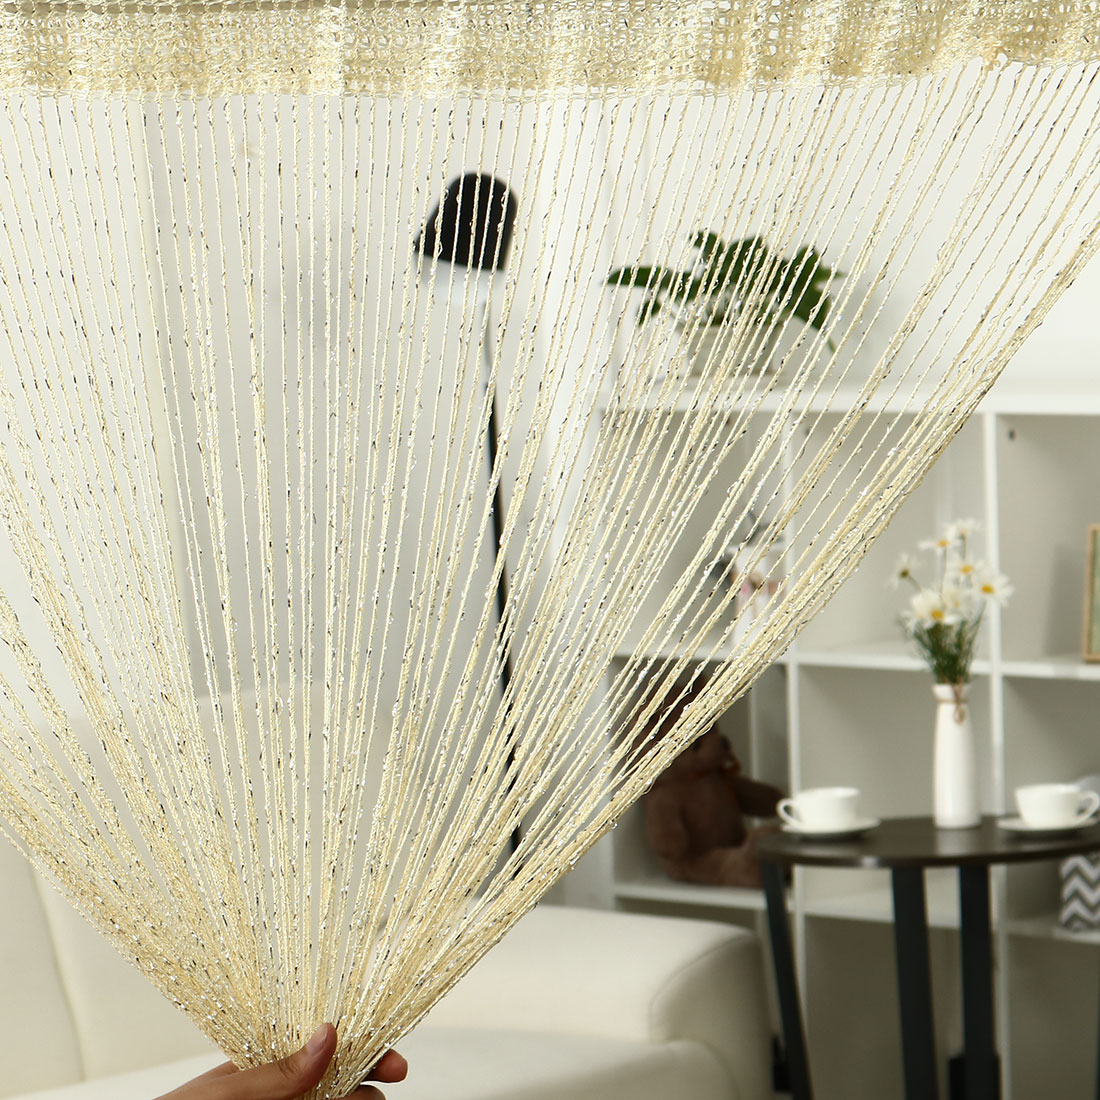 How To Make Curtain Lights String Curtain Fringe Panel 39